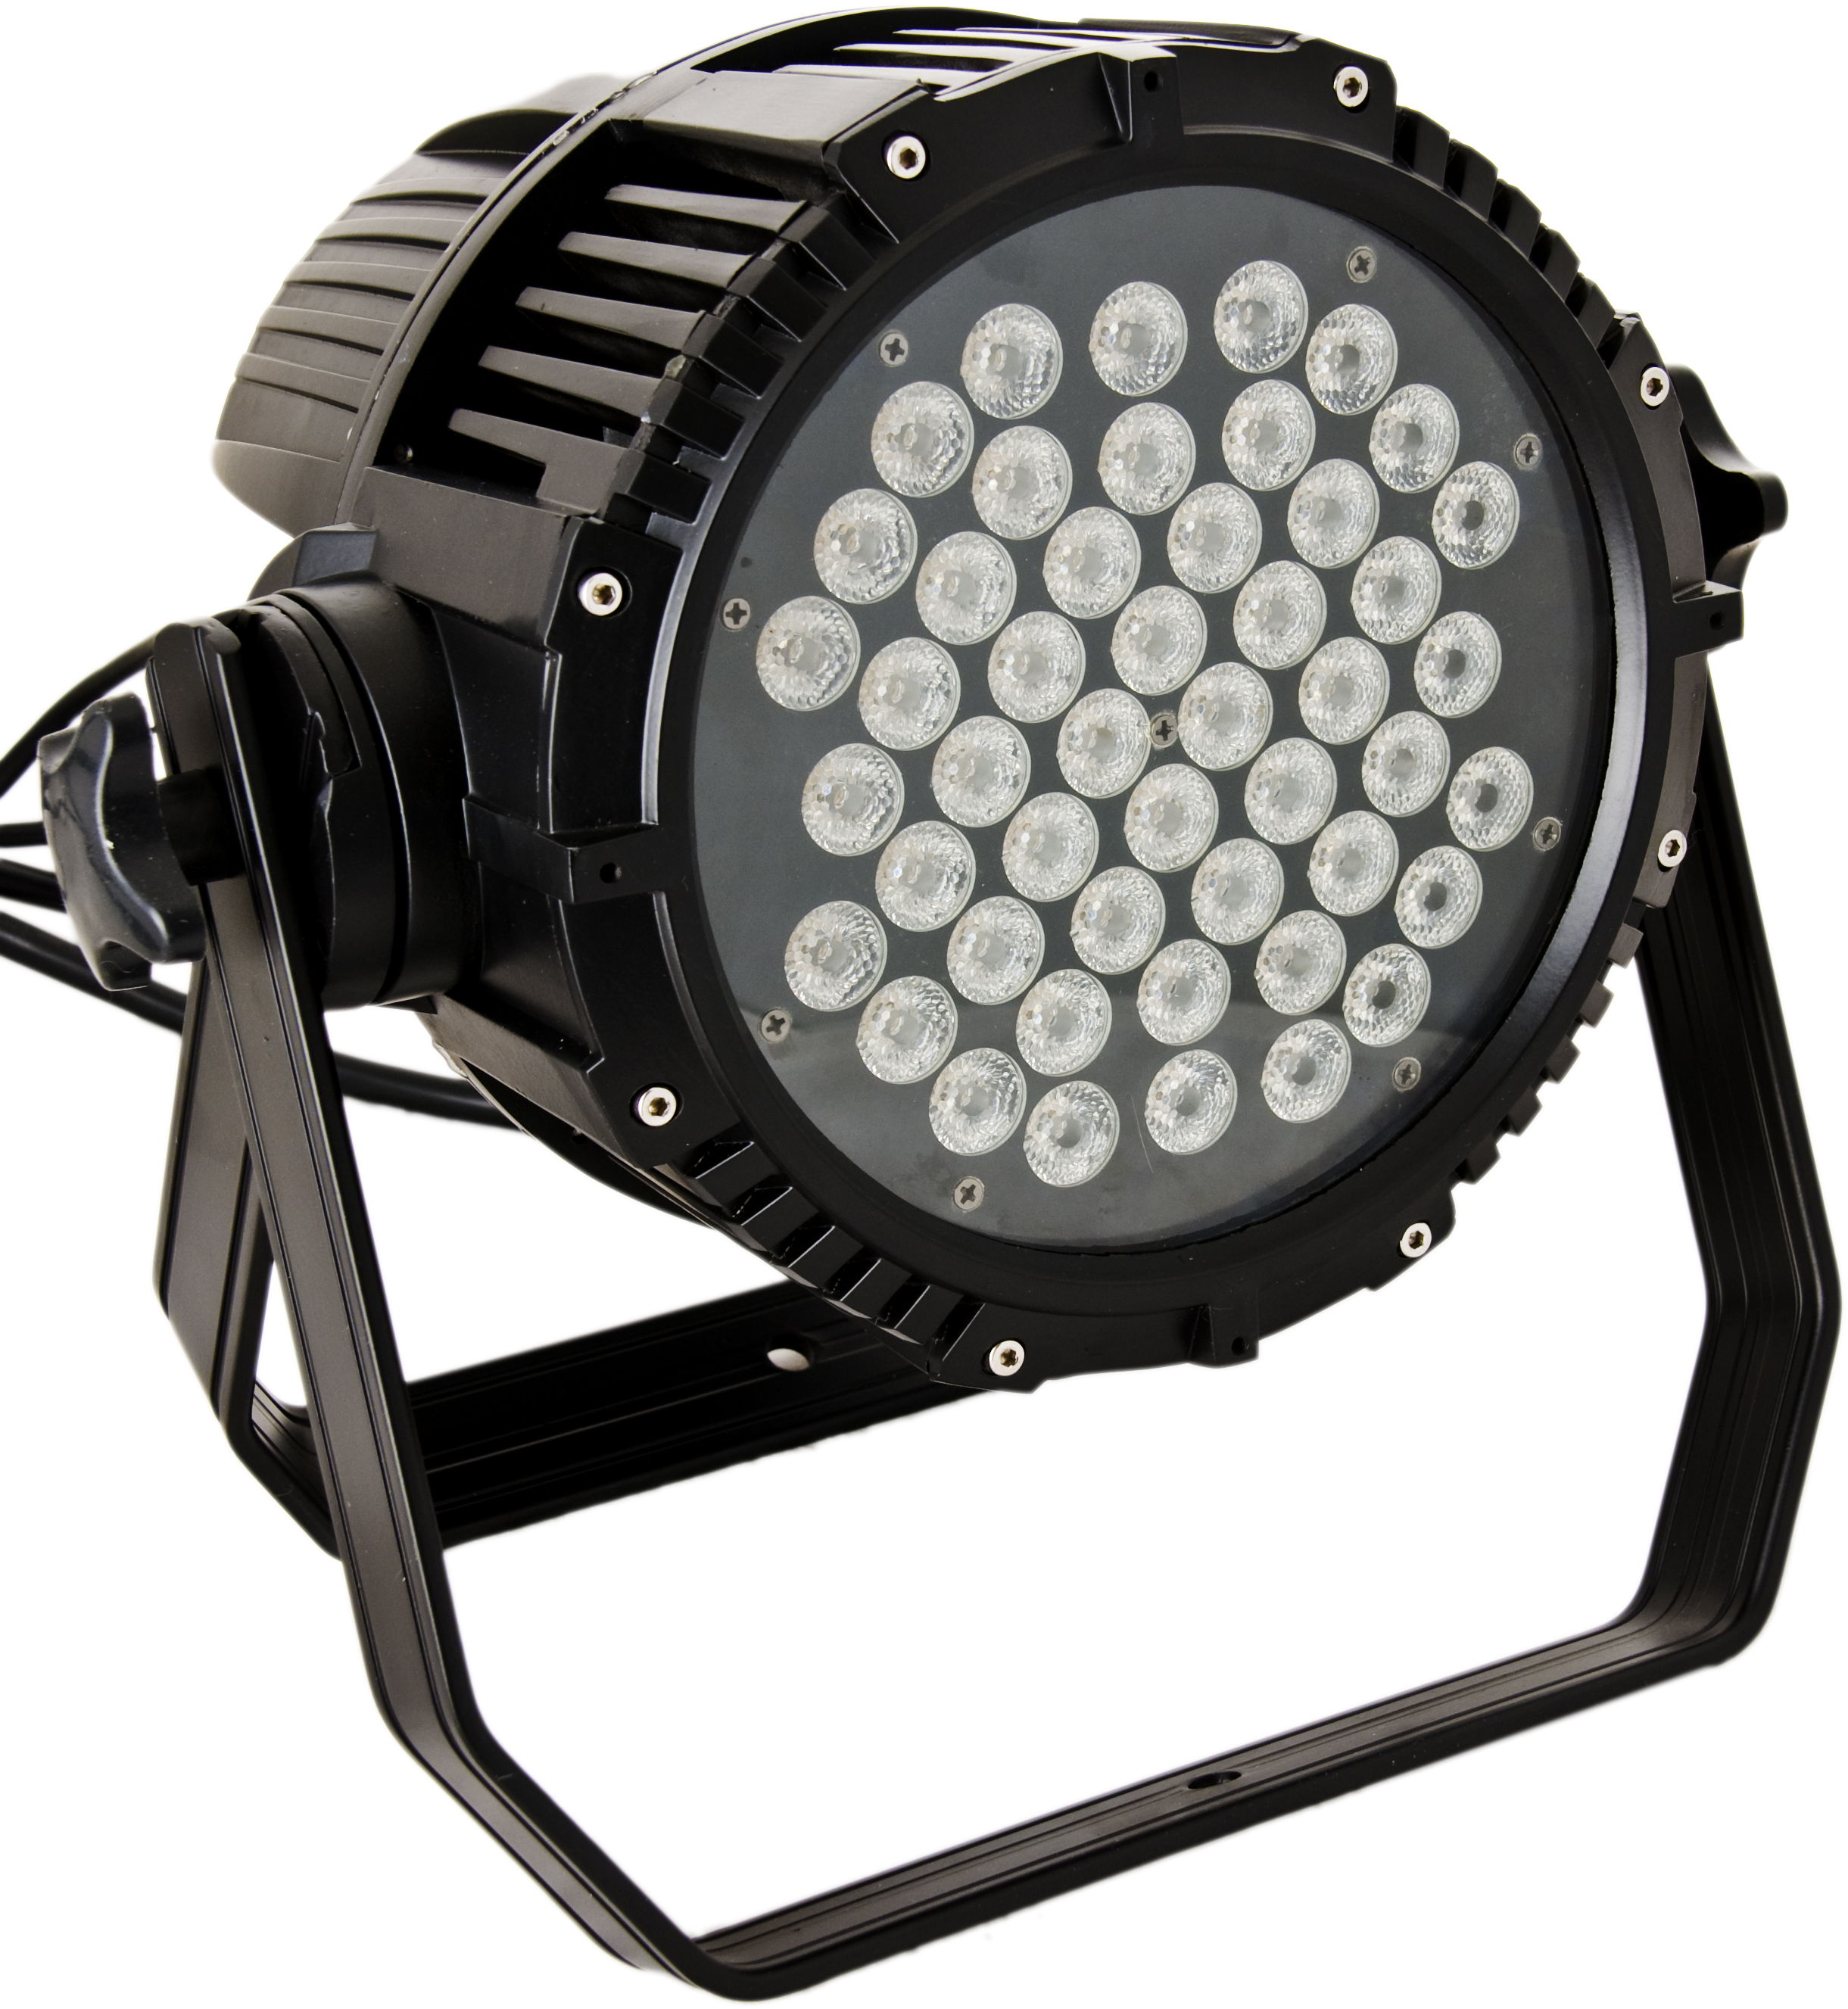 Acq 48wa3in1 ip65 tv sound light rental event media studio one of our new stage wash light based on 48 pieces of 3w 3in1 aloadofball Gallery